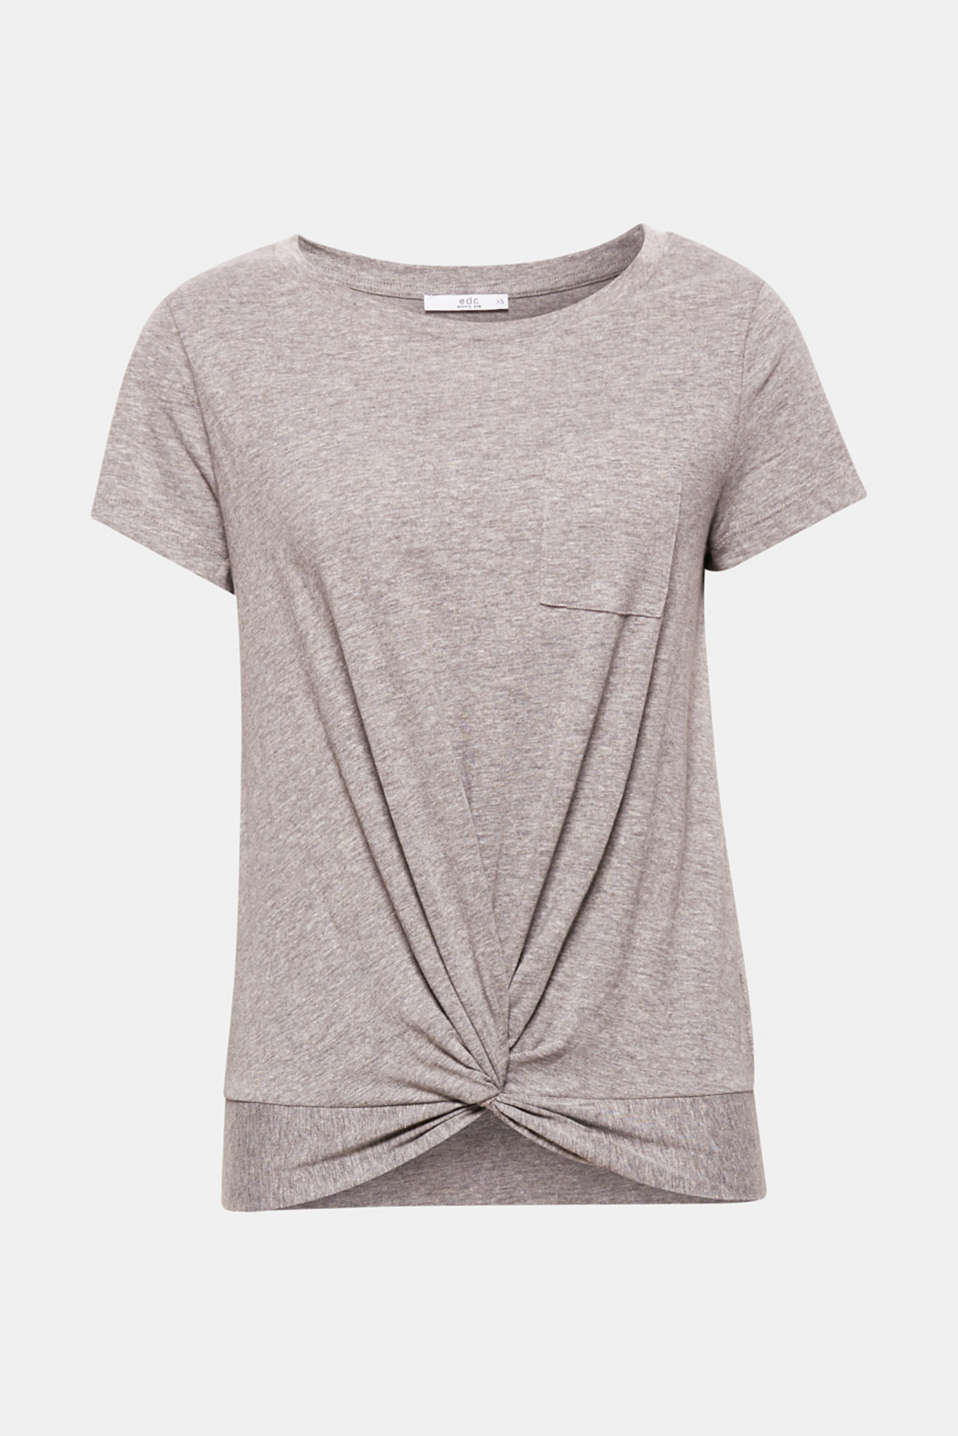 Relaxed cut, charming detail: This casual, lightweight cotton T-shirt features an unexpected, decorative draped effect on the front of the hem